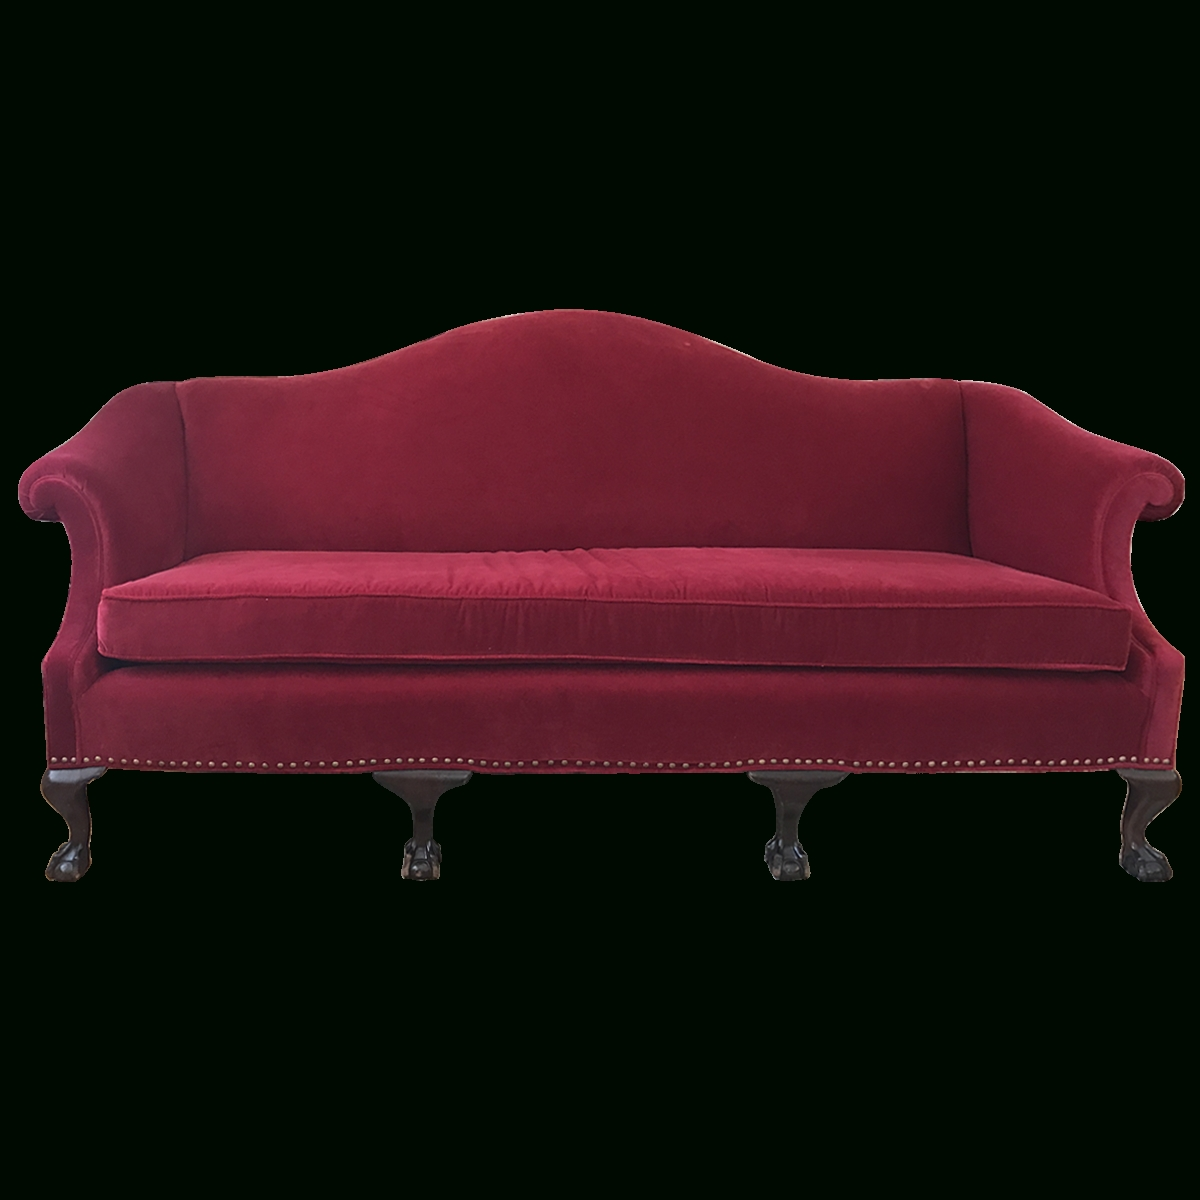 Viyet – Designer Furniture – Seating – Antique Chippendale Style Intended For Chippendale Camelback Sofas (Image 20 of 20)